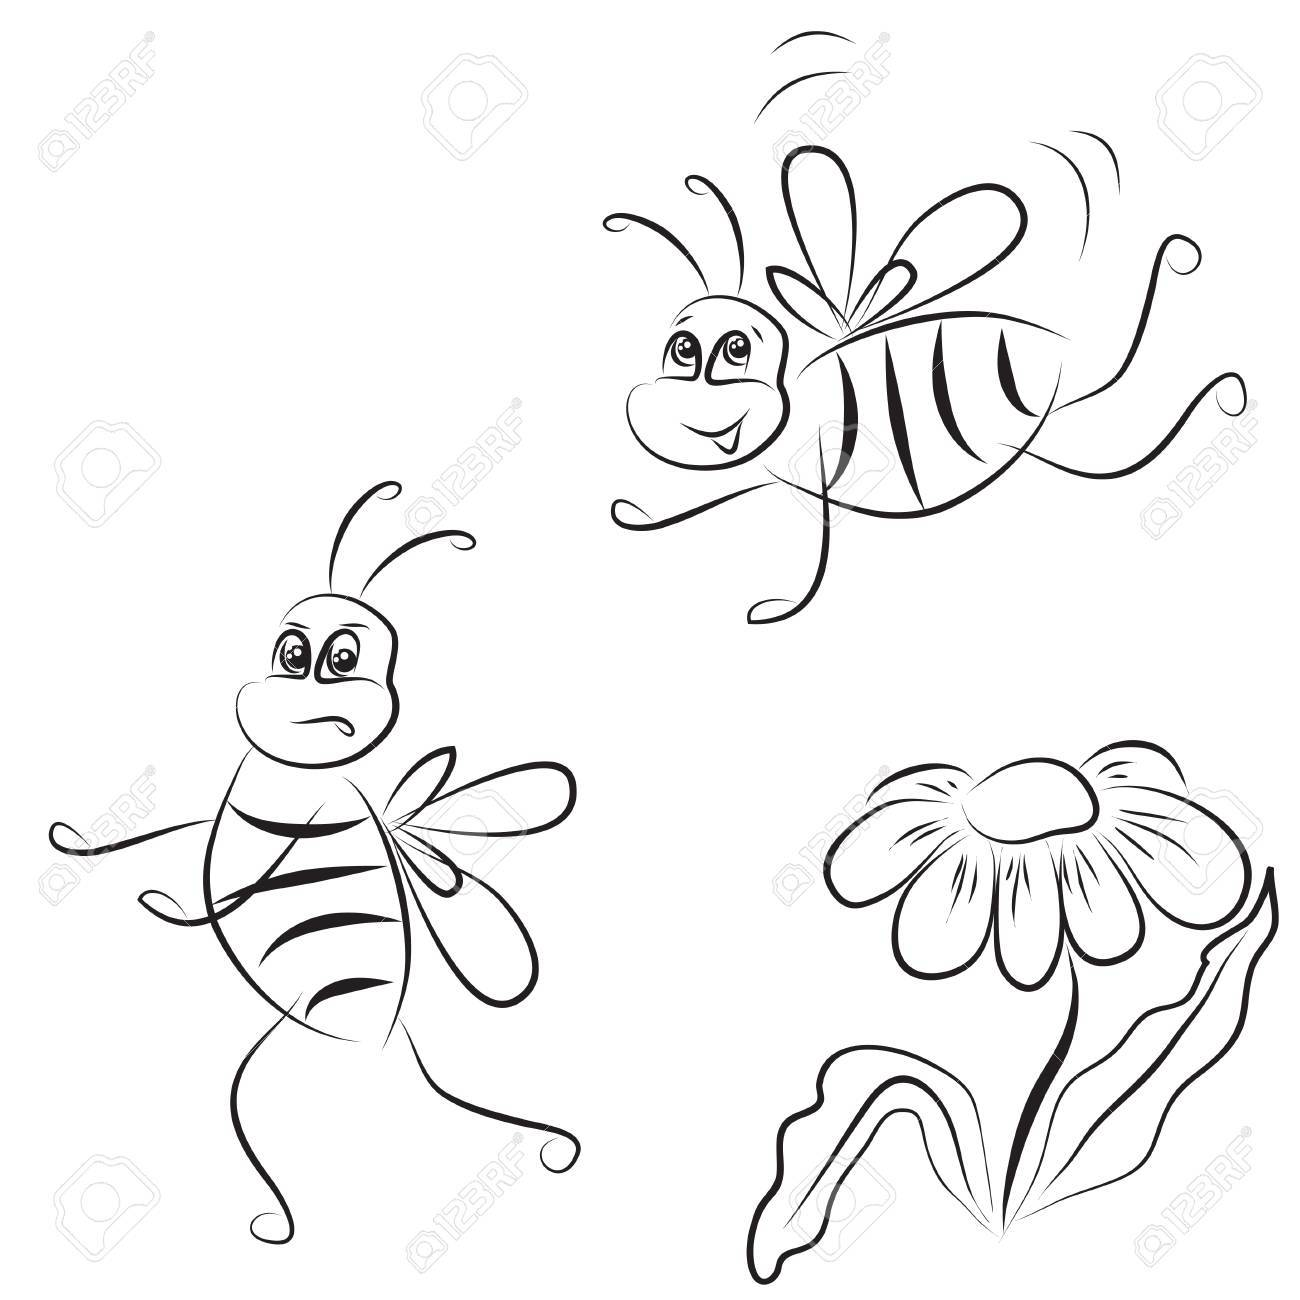 1300x1300 Simple Outline Drawing Bee And Daisy On A White Background Royalty